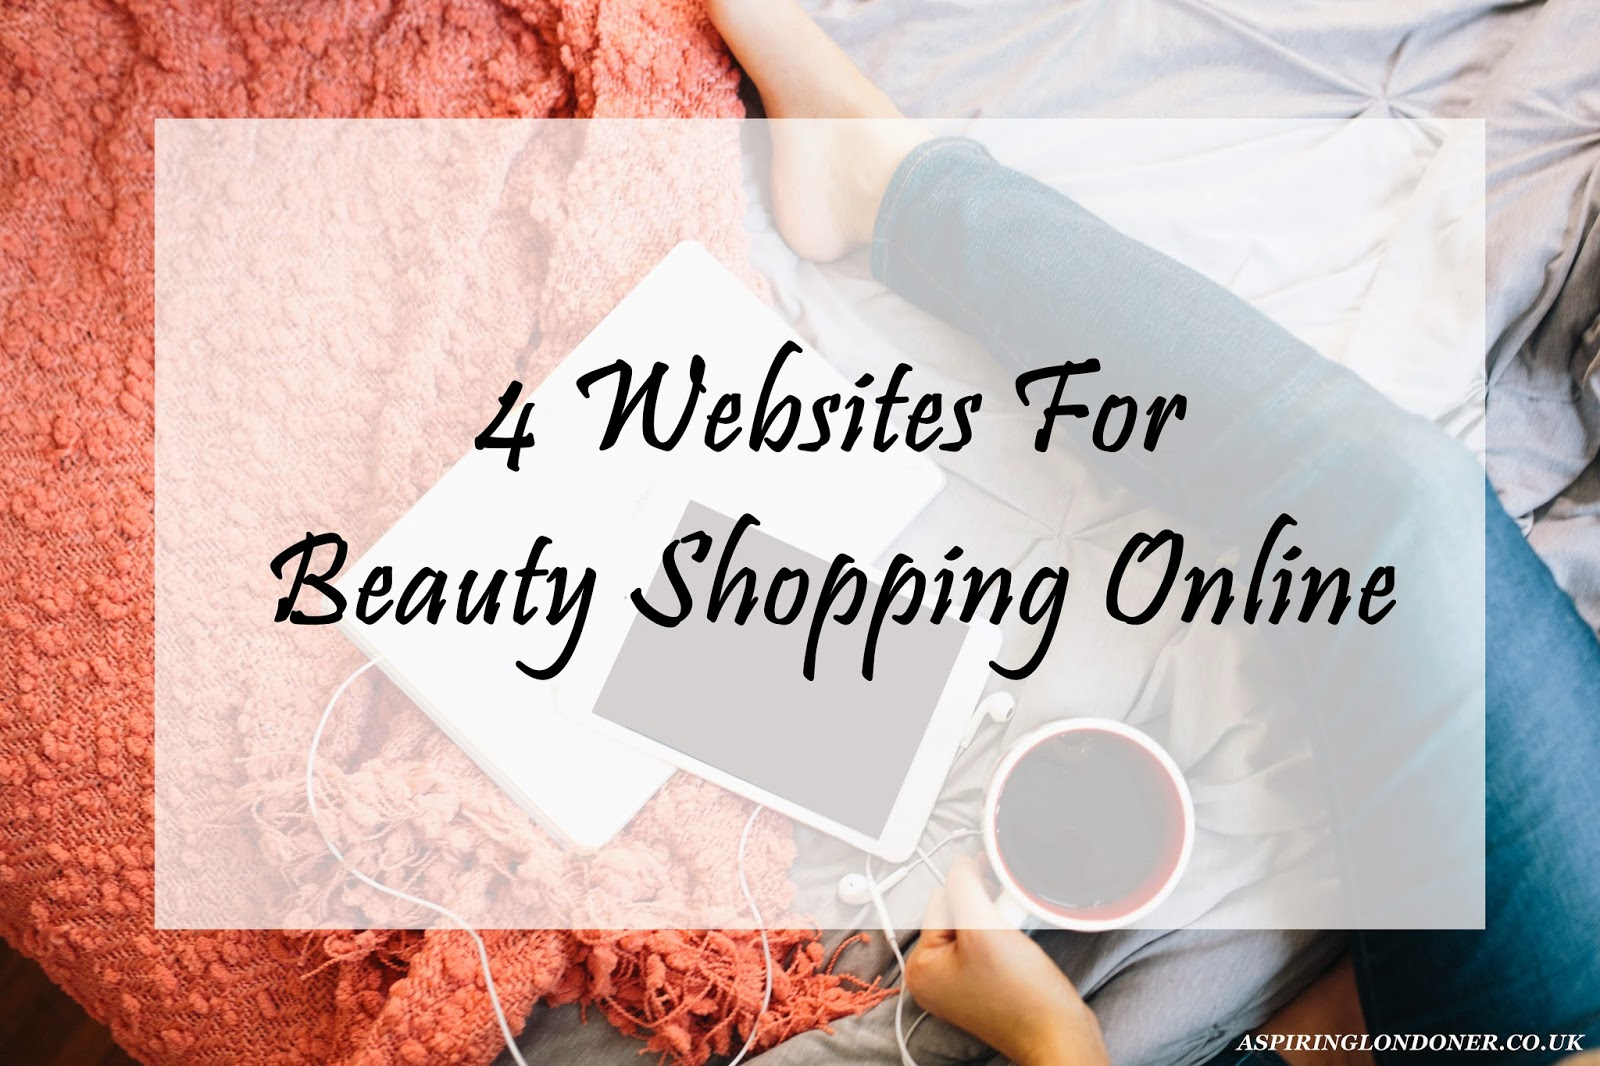 4 Essential Websites for Beauty Shopping Online - Aspiring Londoner